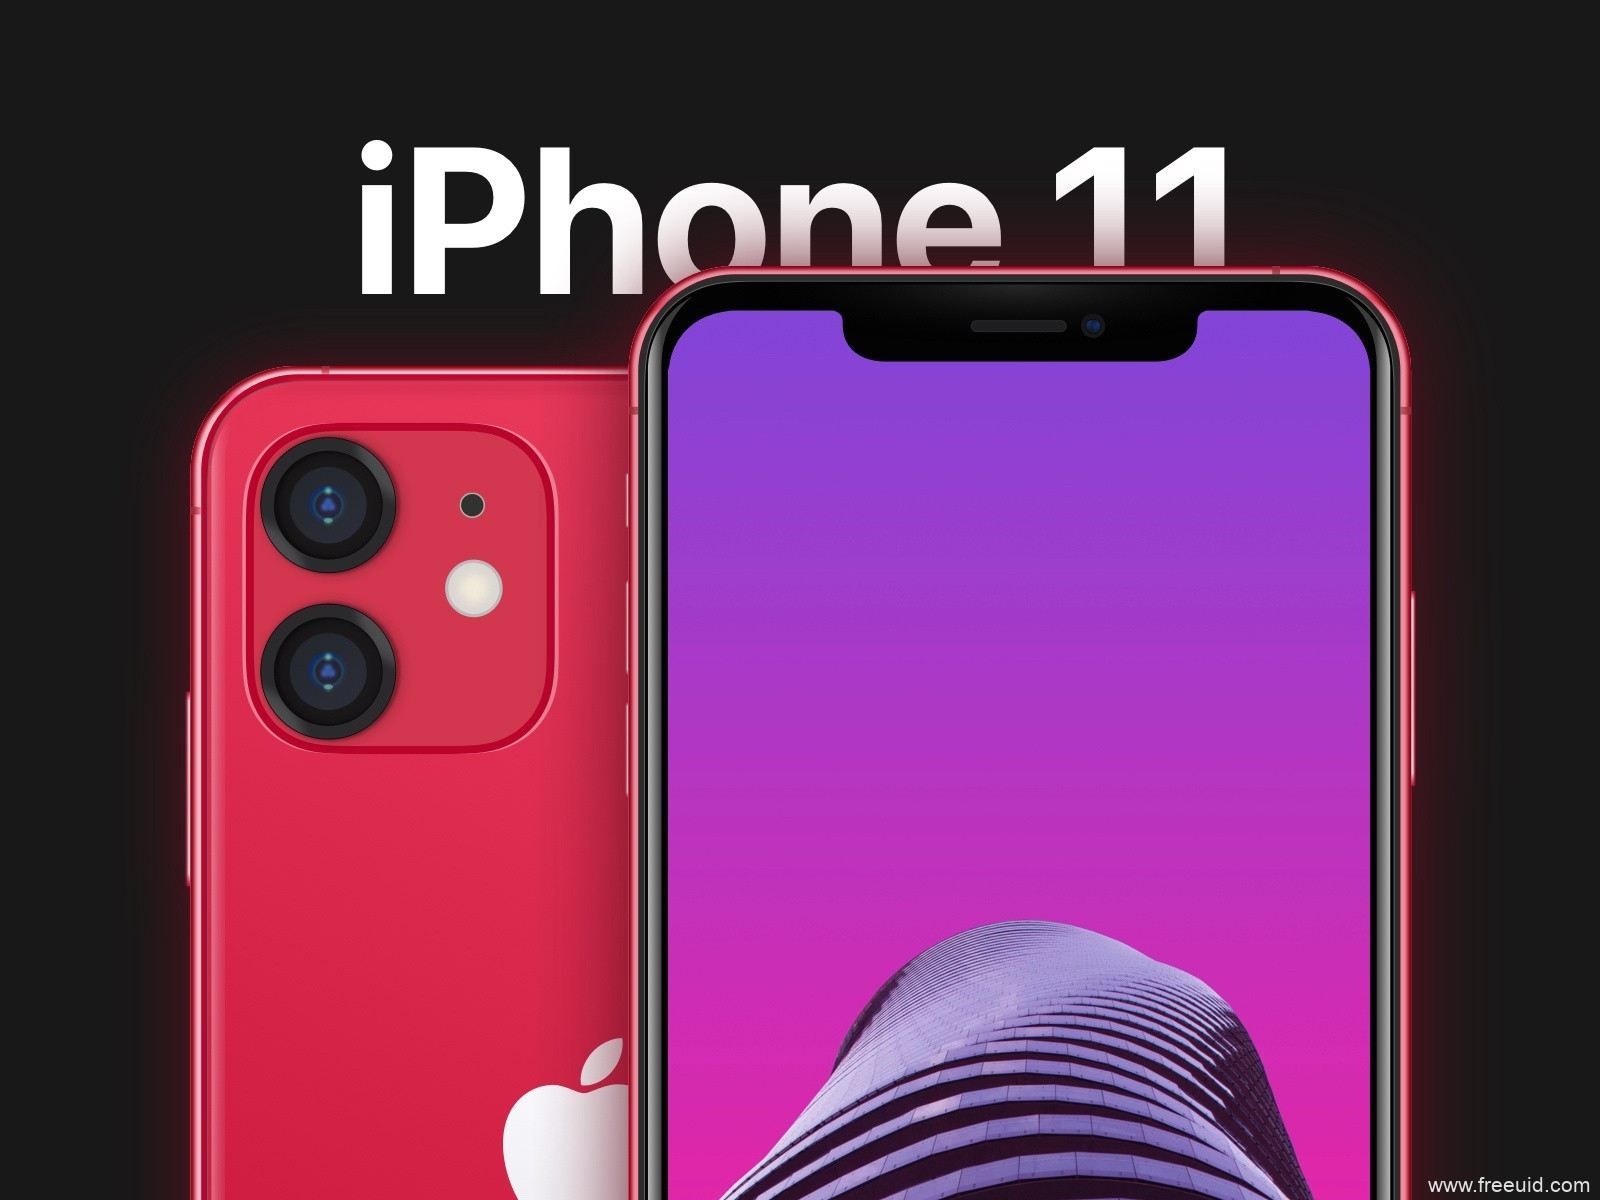 iphone 11 & iphone 11 pro max mockup .sketch素材下载